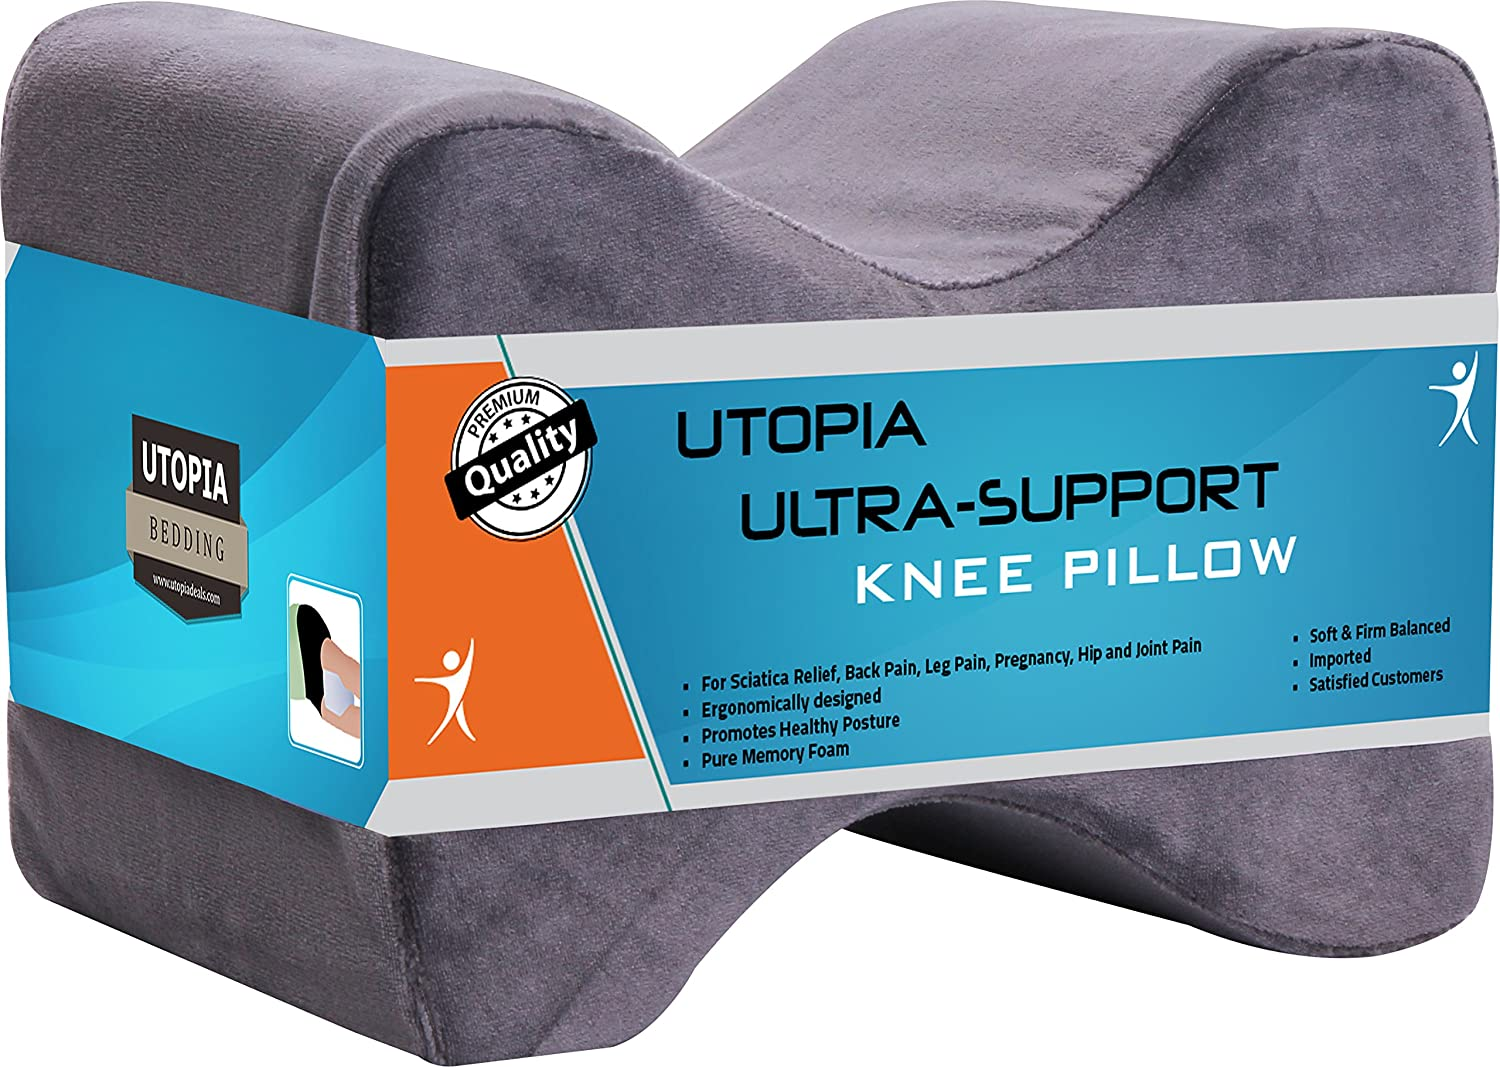 Utopia Bedding Orthopedic Contoured Memory Foam Knee Pillow - for Sciatic Back Pain - Removable...